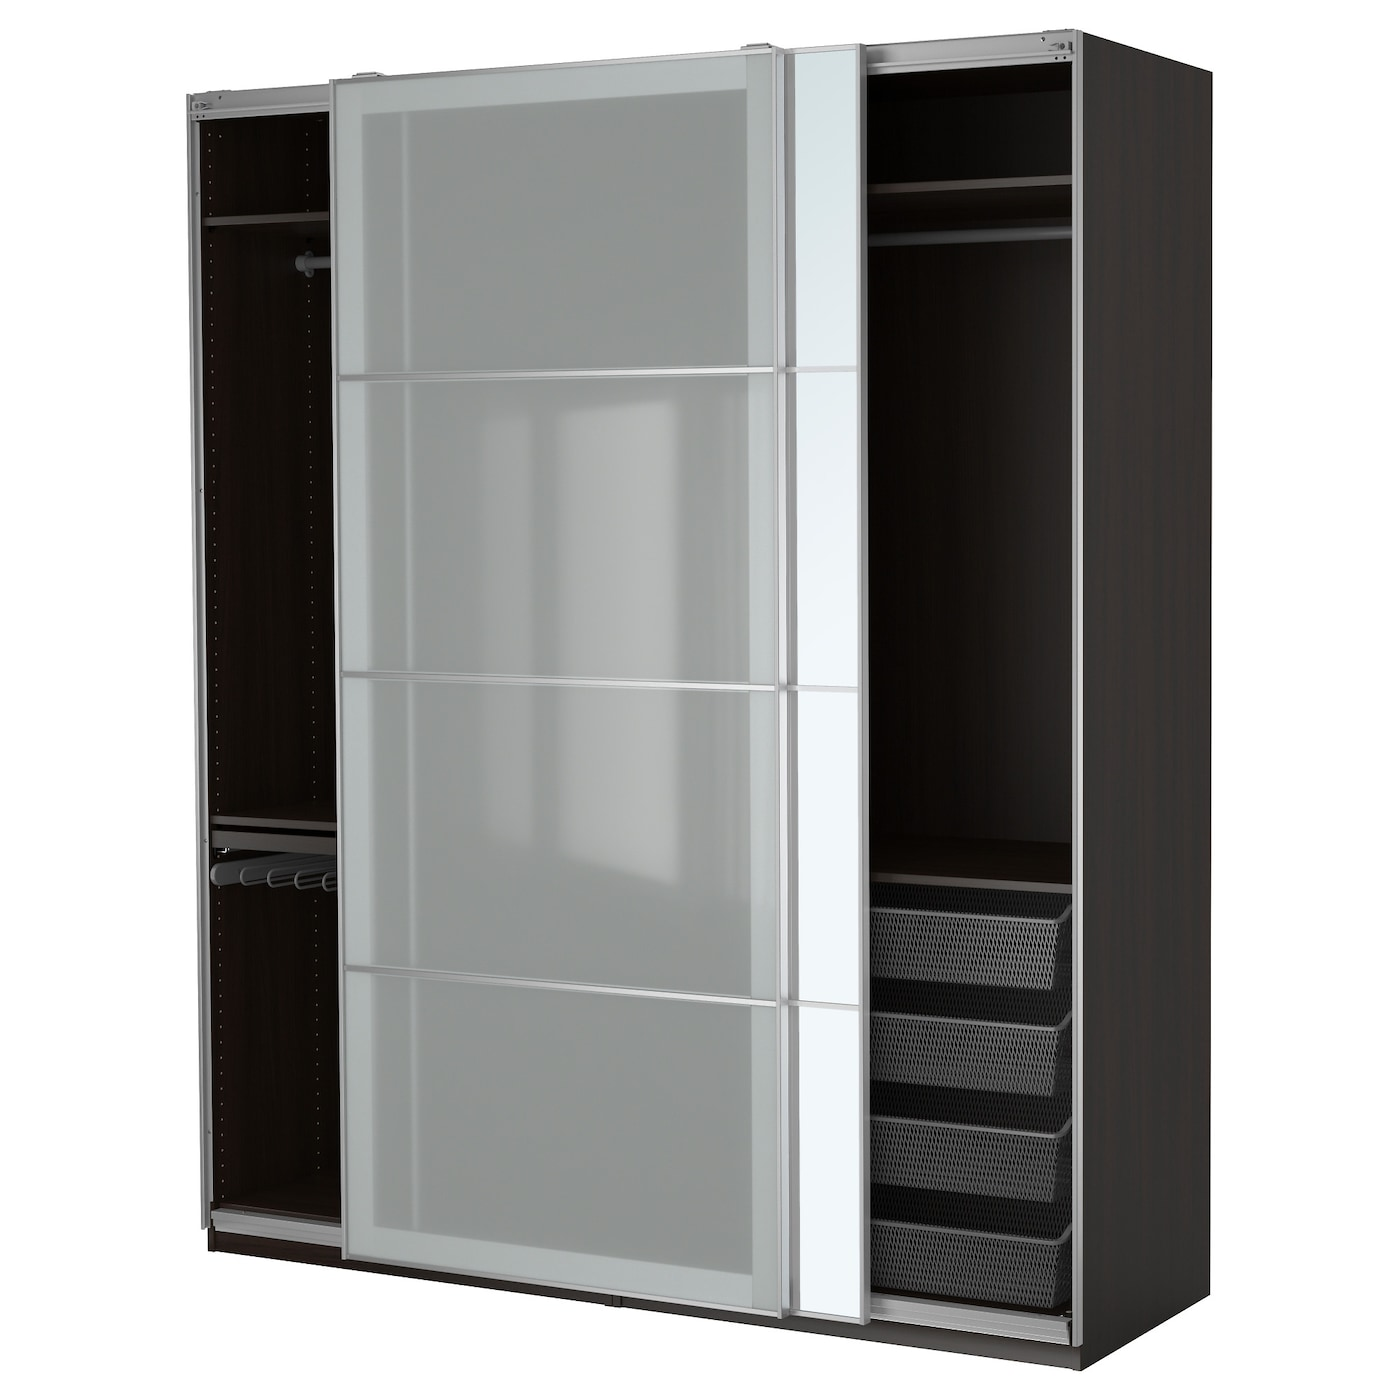 Pax wardrobe black brown auli sekken 200x66x236 cm ikea for Armoire de chambre ikea